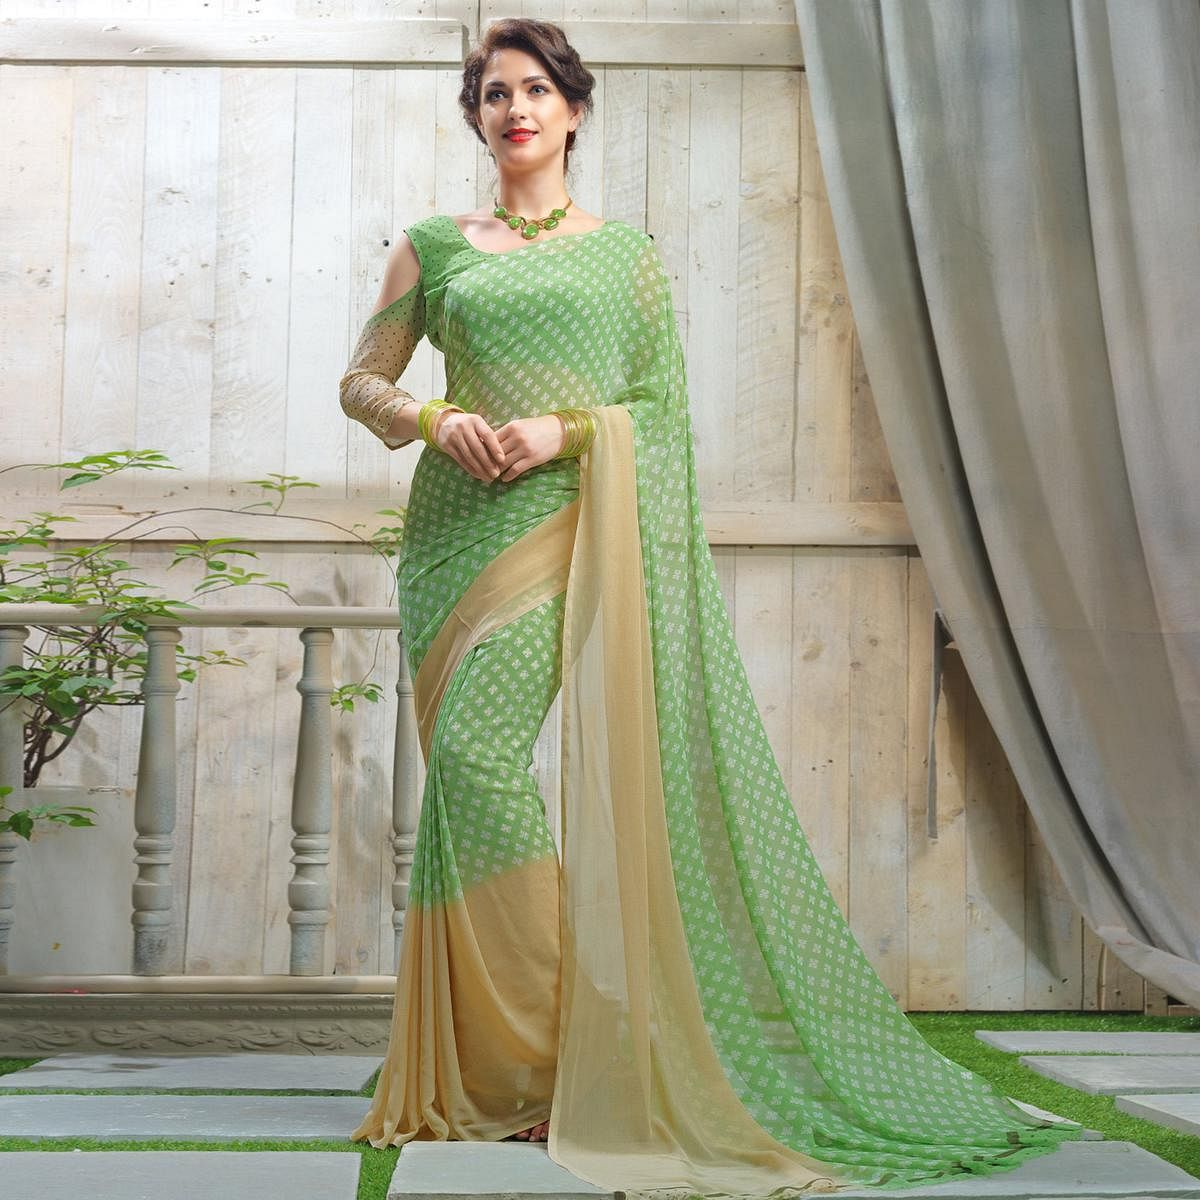 fadaa54fe Buy Radiant Green Colored Casual Printed Faux Georgette Saree For womens  online India